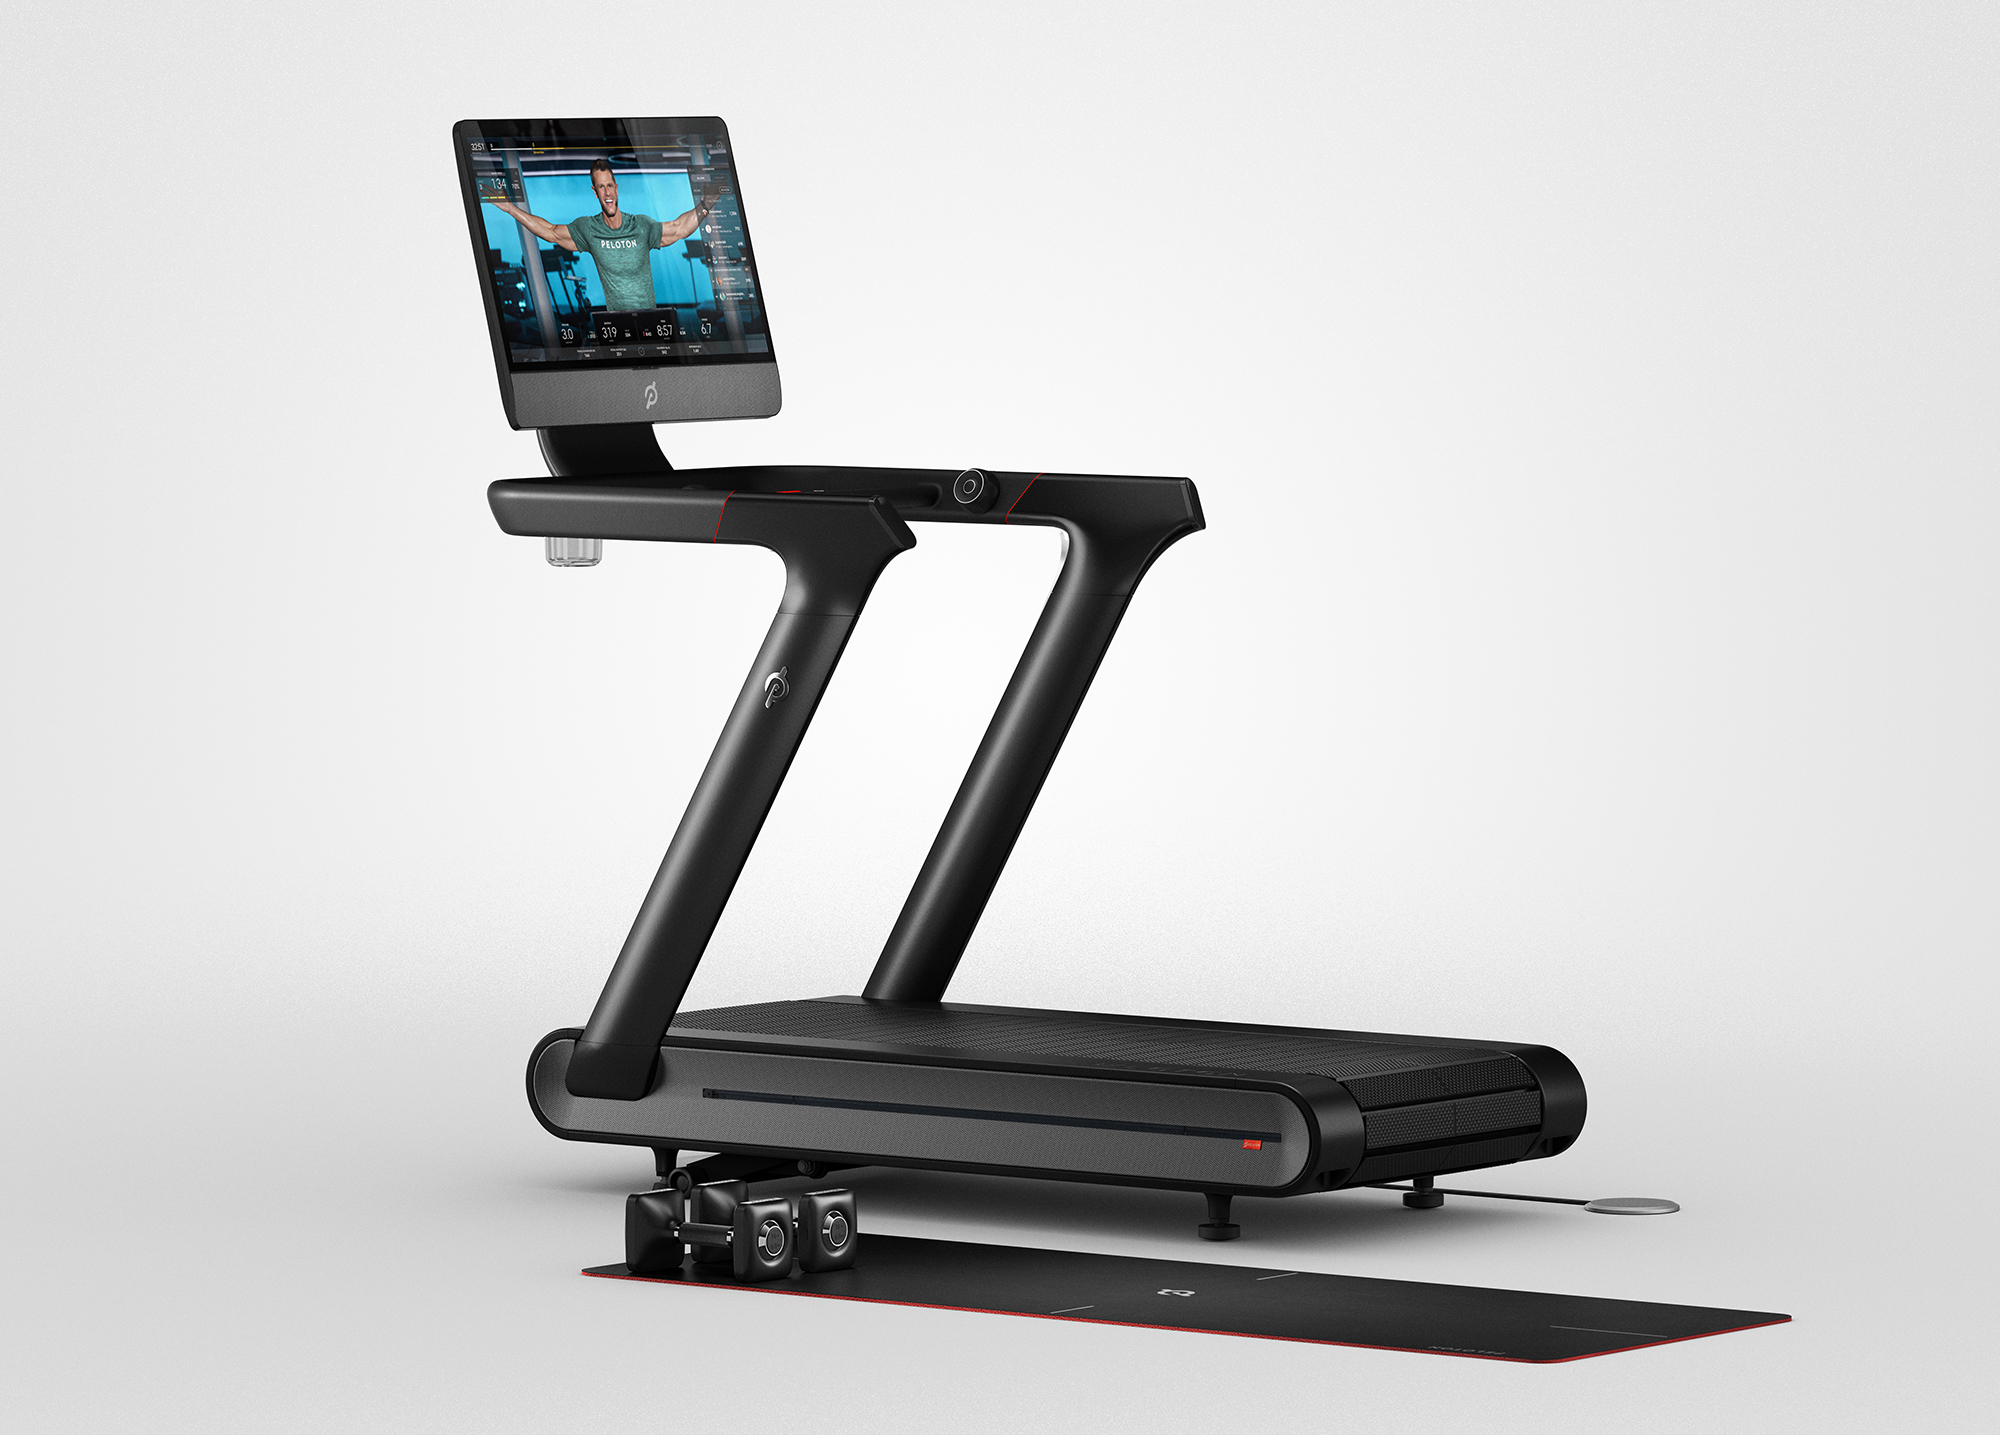 Peloton refuses to recall its Tread+ treadmill after 39 accidents. Its stock is tumbling